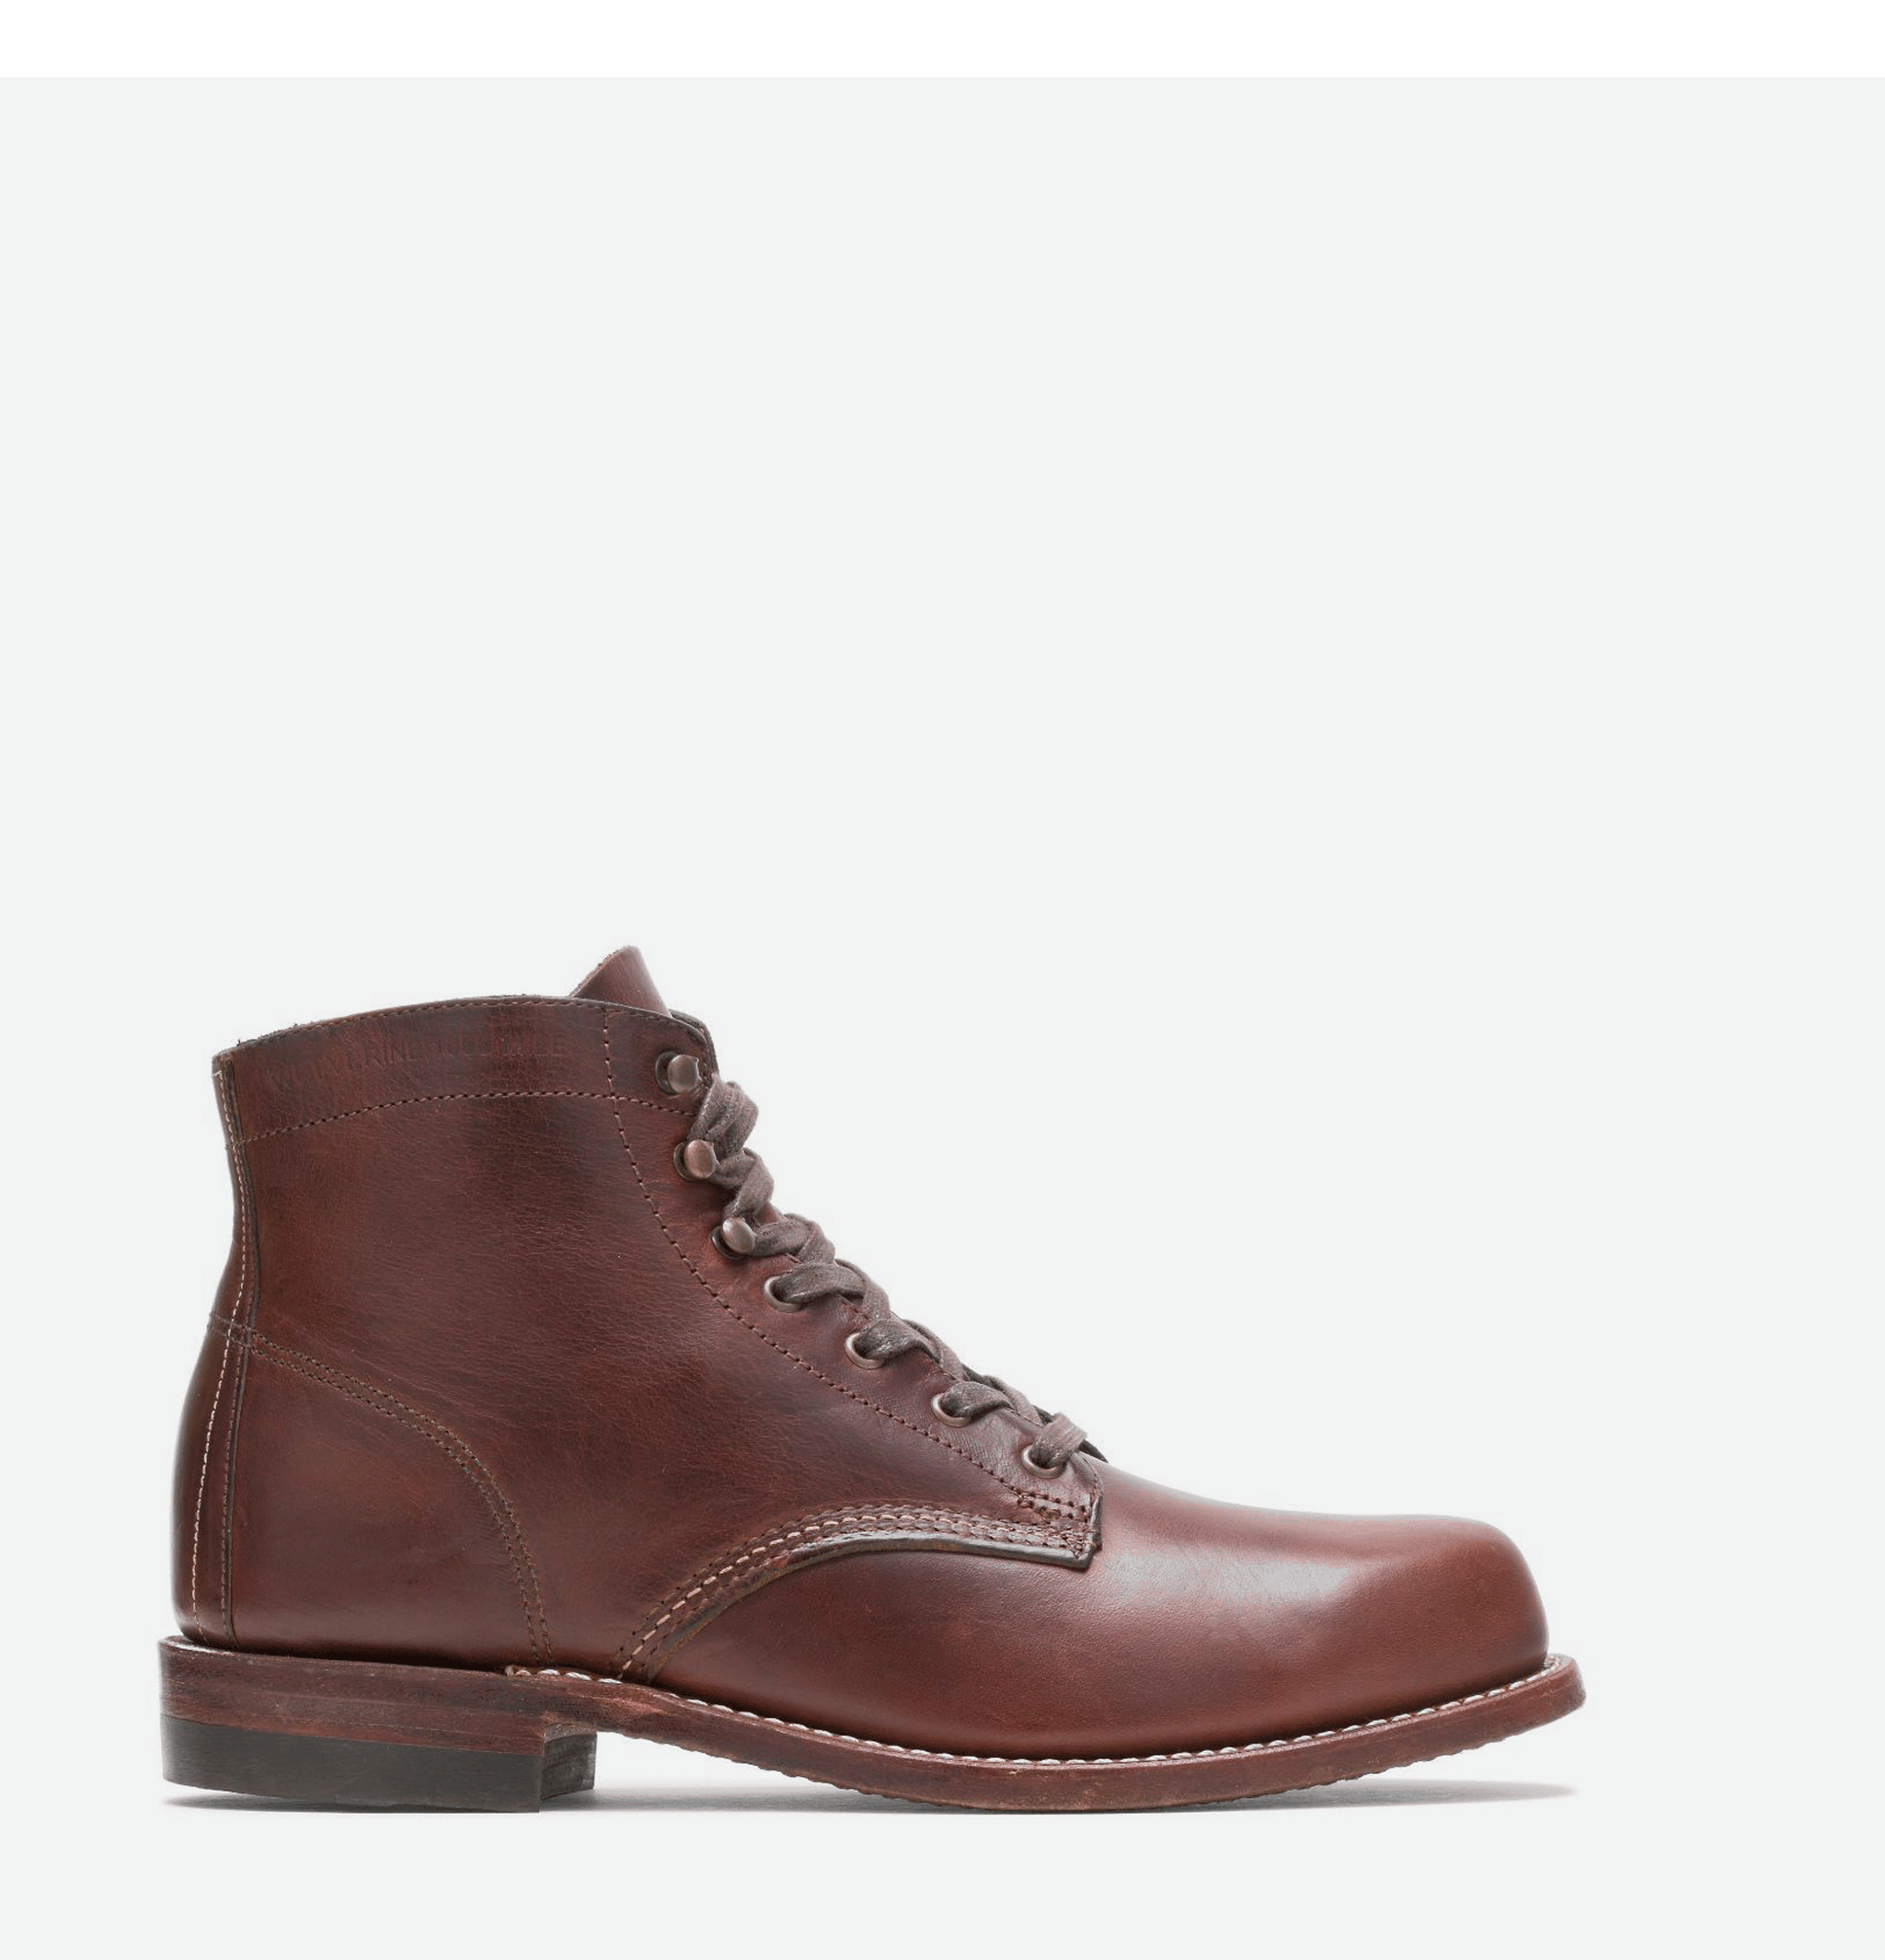 1000 Mile Boots Rust